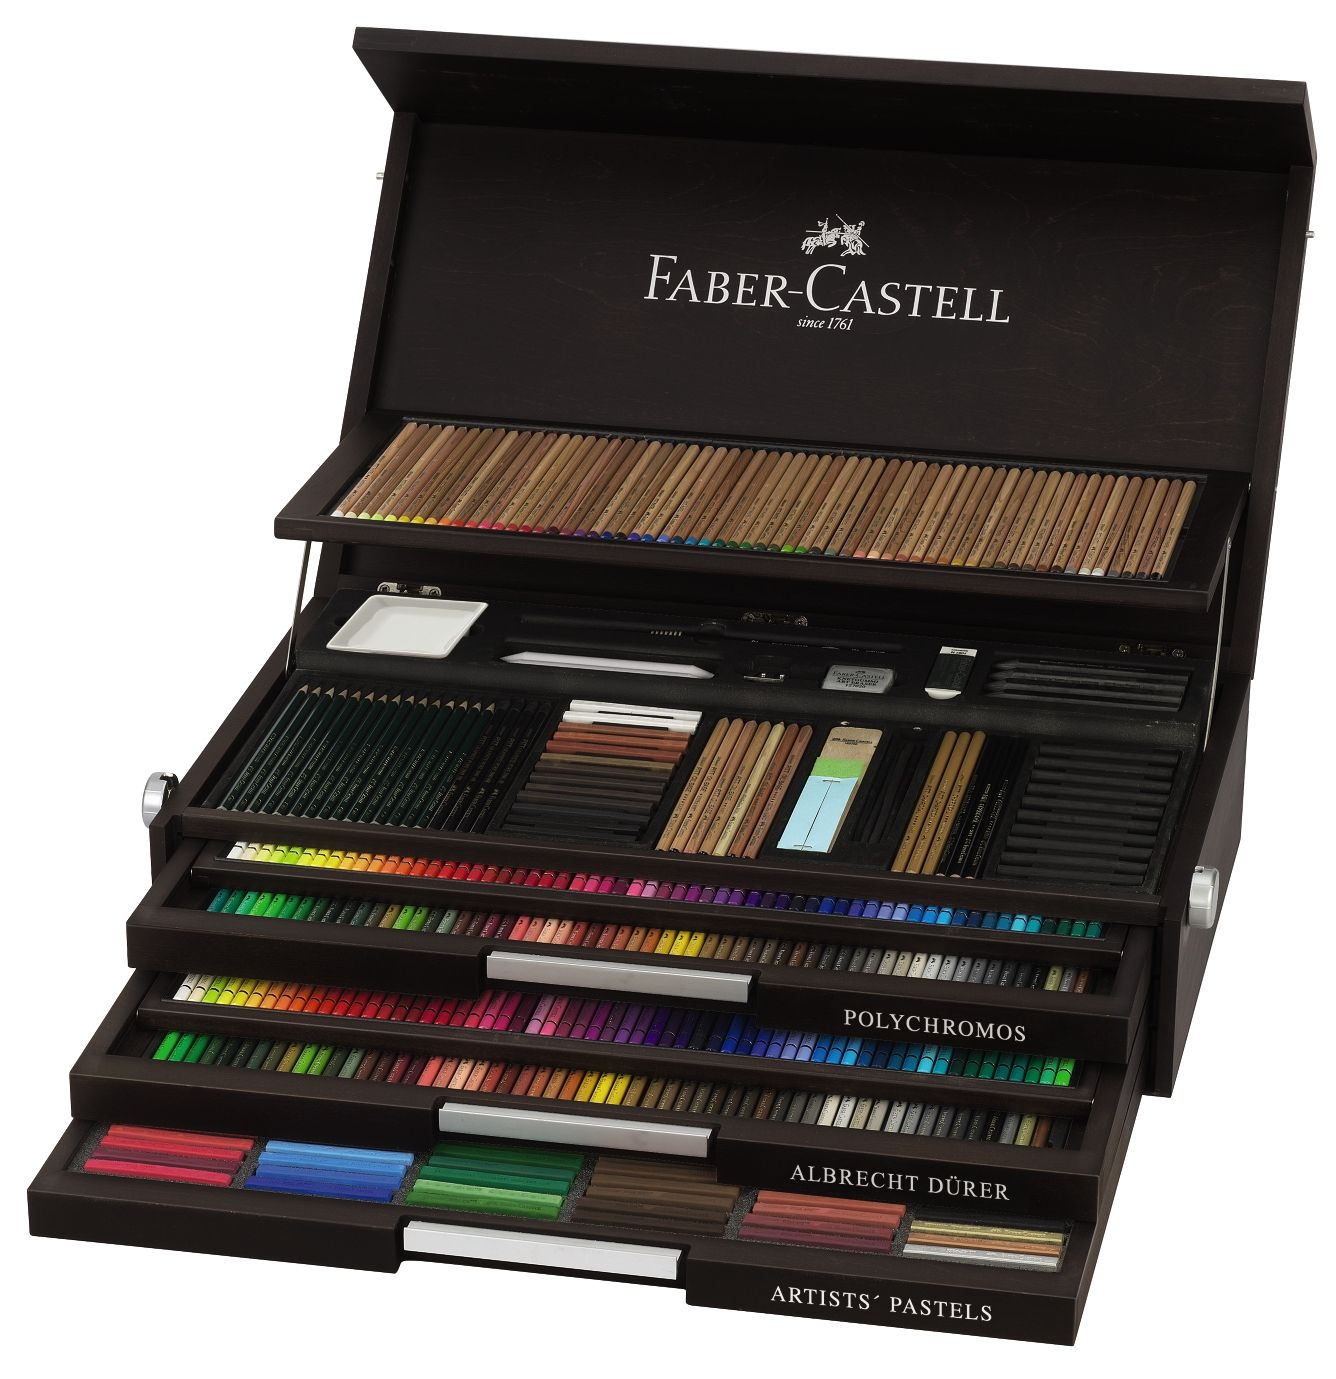 Love at first sight Faber Castell 250th Anniversary Box